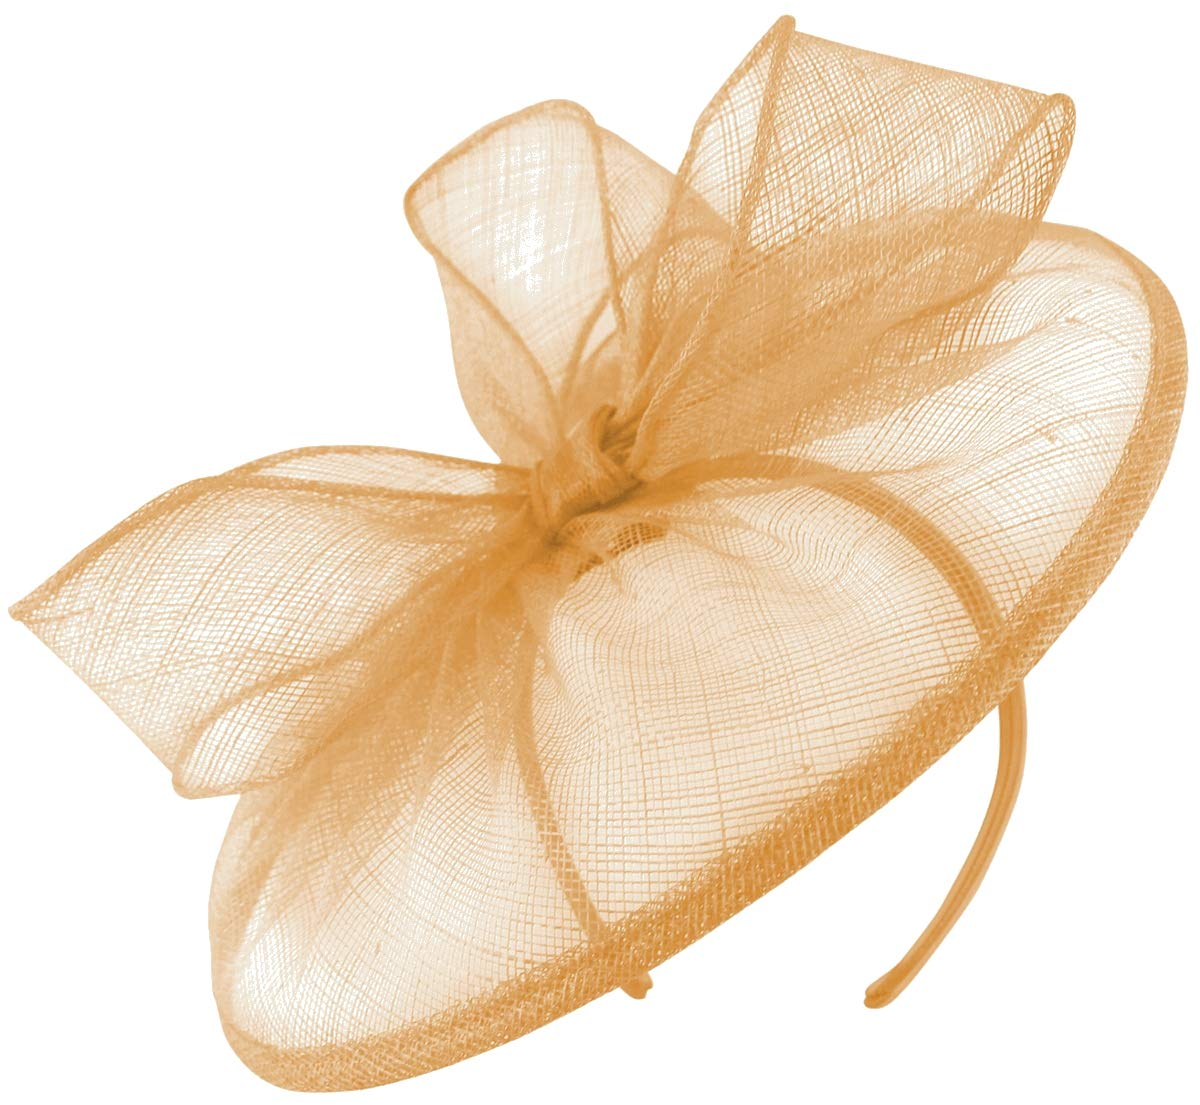 Failsworth Millinery Sinamay Disc in Apricot, Size: One Size